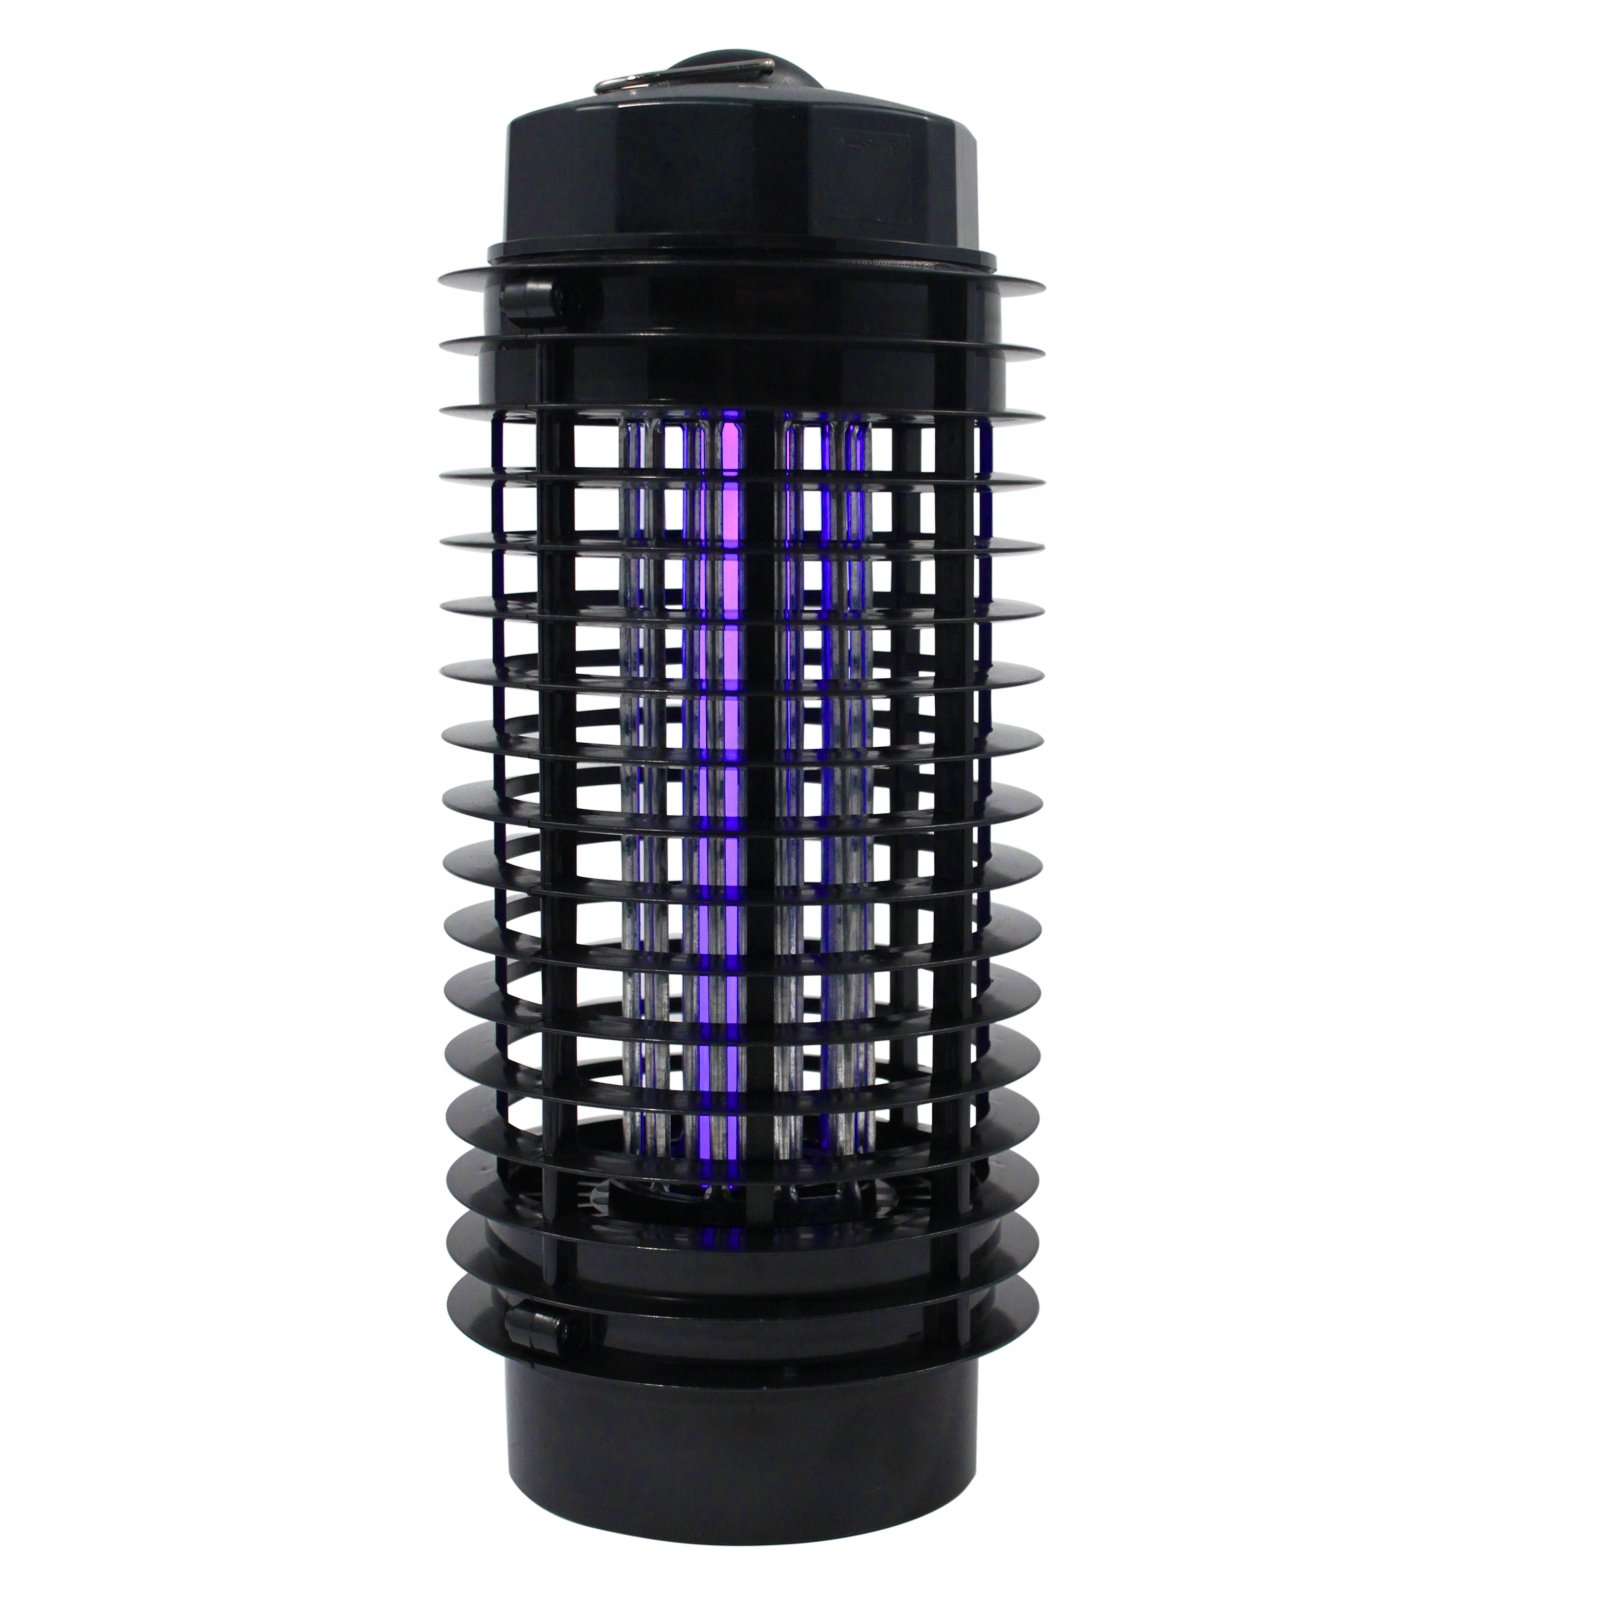 ASR Outdoor Rechargeable UV Bug Zapper 500 Foot Range Travel Size USB Cable